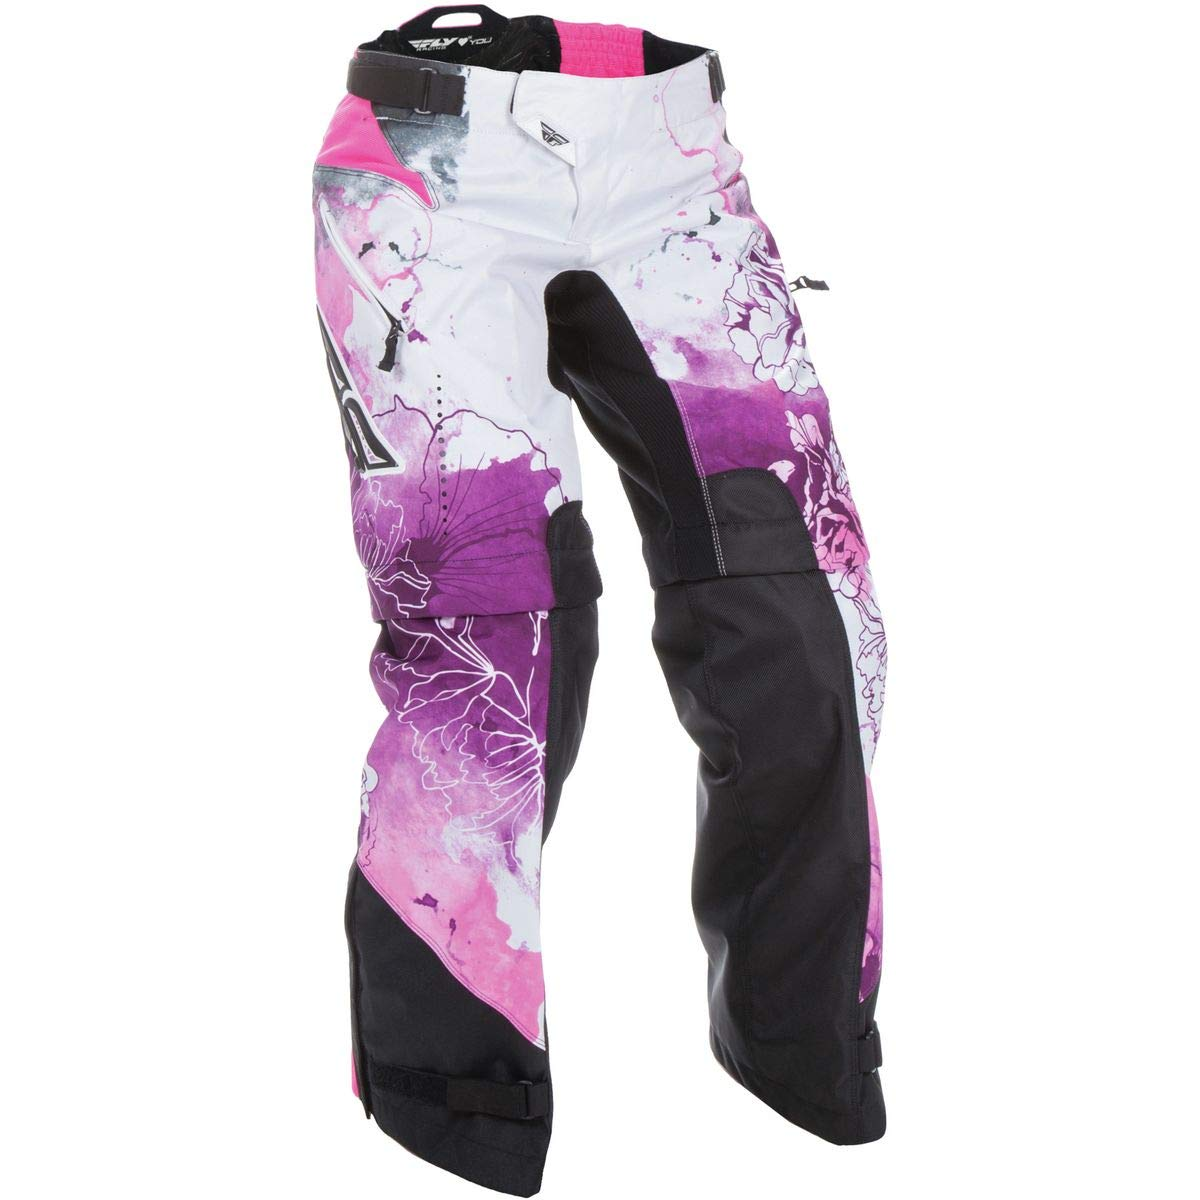 Fly Racing Unisex-Adult Kinetic Women's Over Boots Pants Pink/Purple Size 9/Size 10